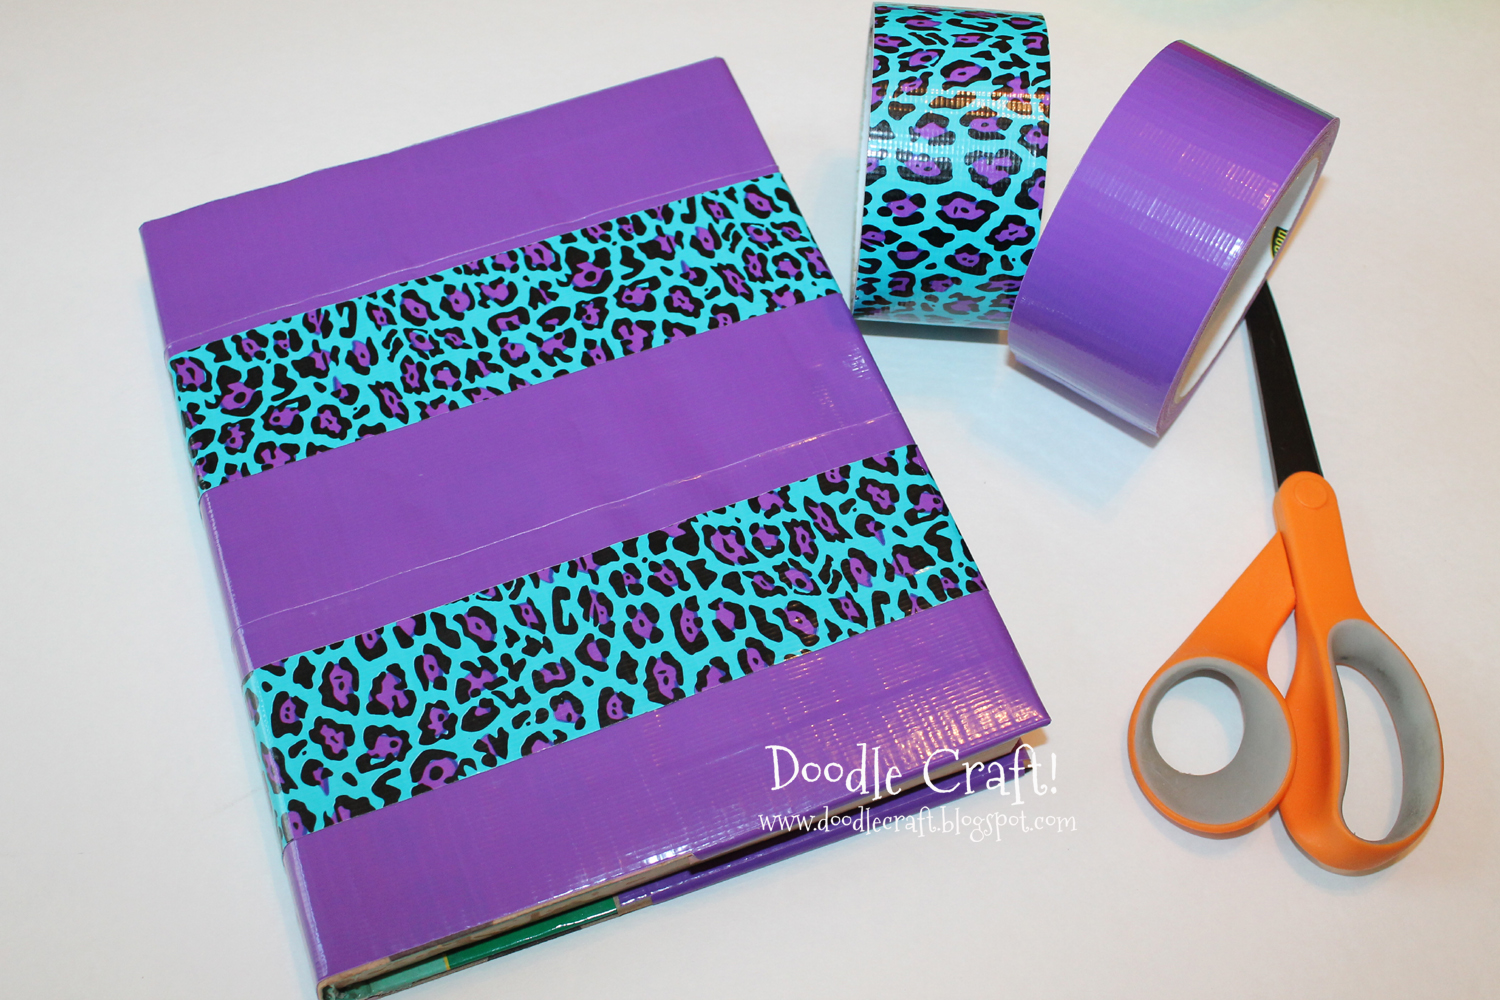 Book Cover Craft Quebec : Doodlecraft how to cover a textbook with duct tape